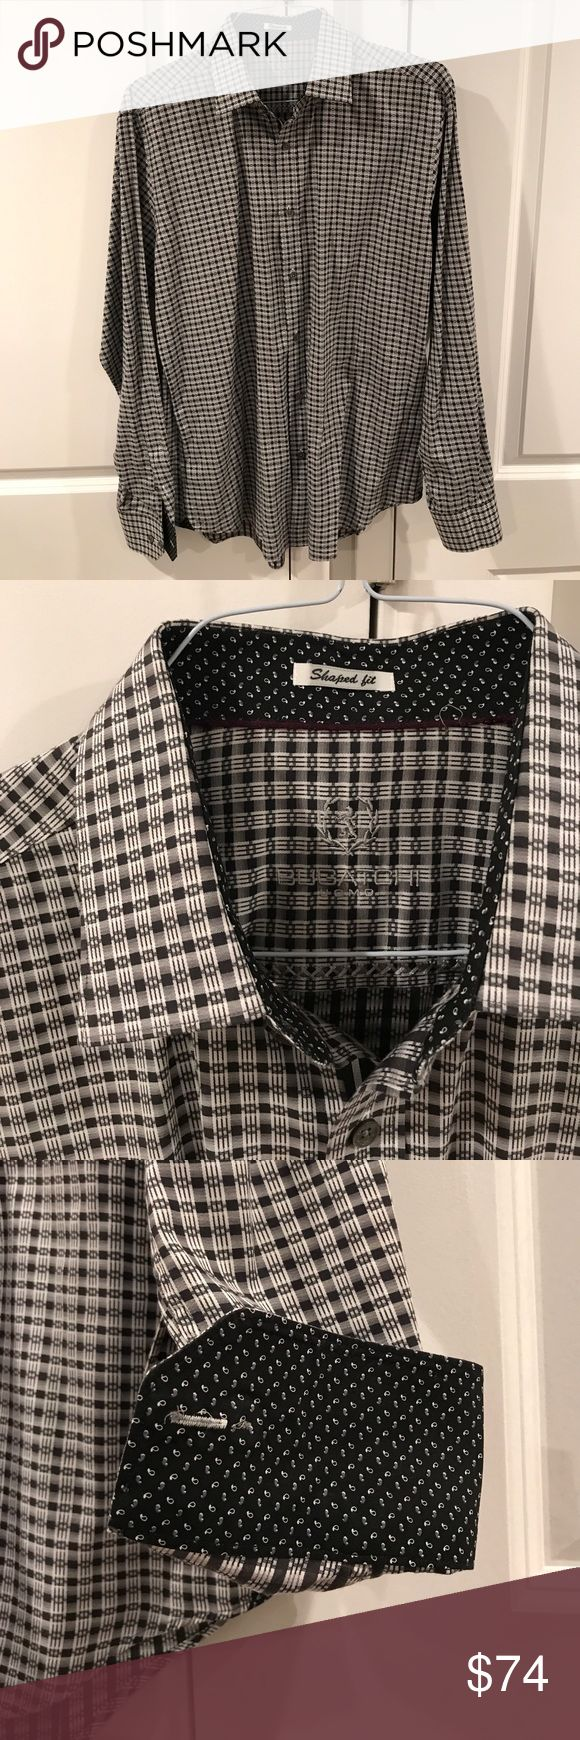 🚀 Bugatchi Uomo X-Large Shaped Fit Button Down Bugatchi Uomo Extra Large Shaped Fit Button Down Shirt. This shirt has been worn a few times and is in excellent condition. Please ask if you have any questions and bundle for a better deal! Thank you 🚀 Bugatchi Shirts Casual Button Down Shirts